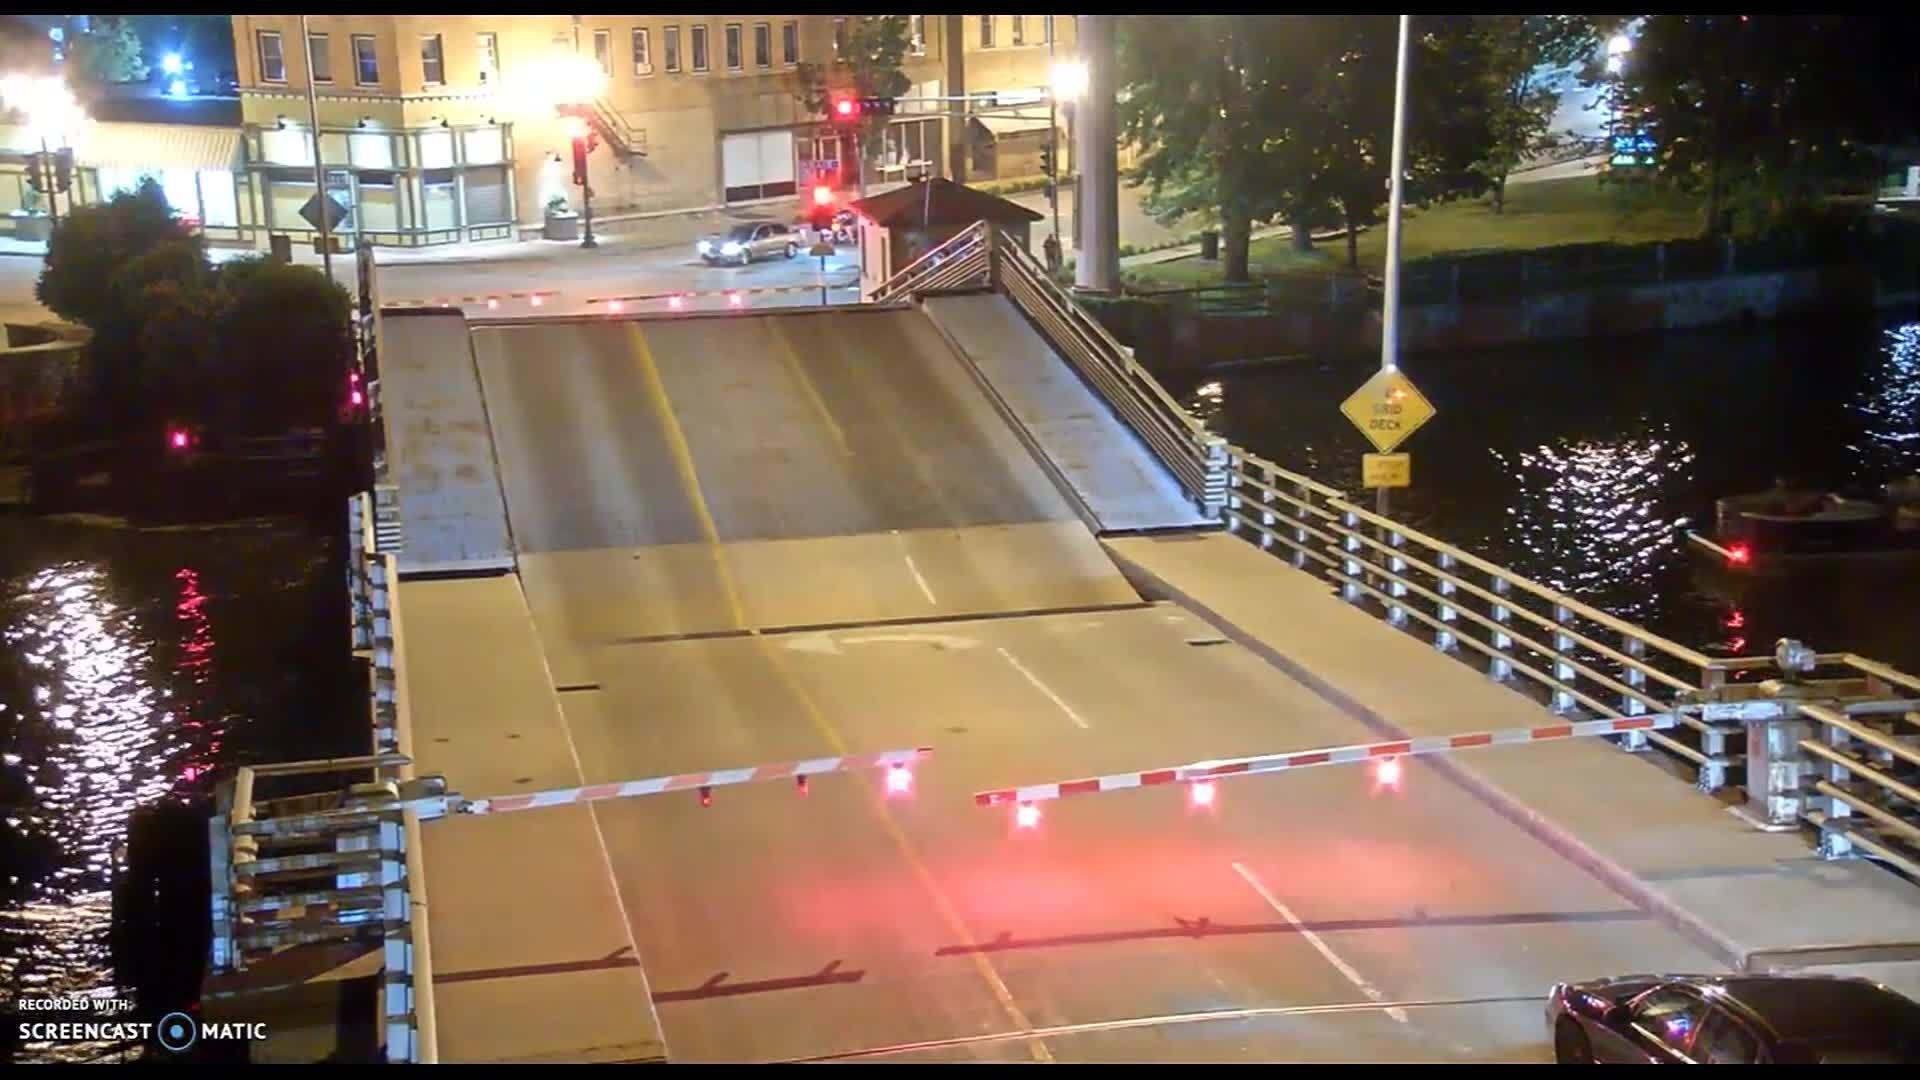 Bicyclist falls into drawbridge